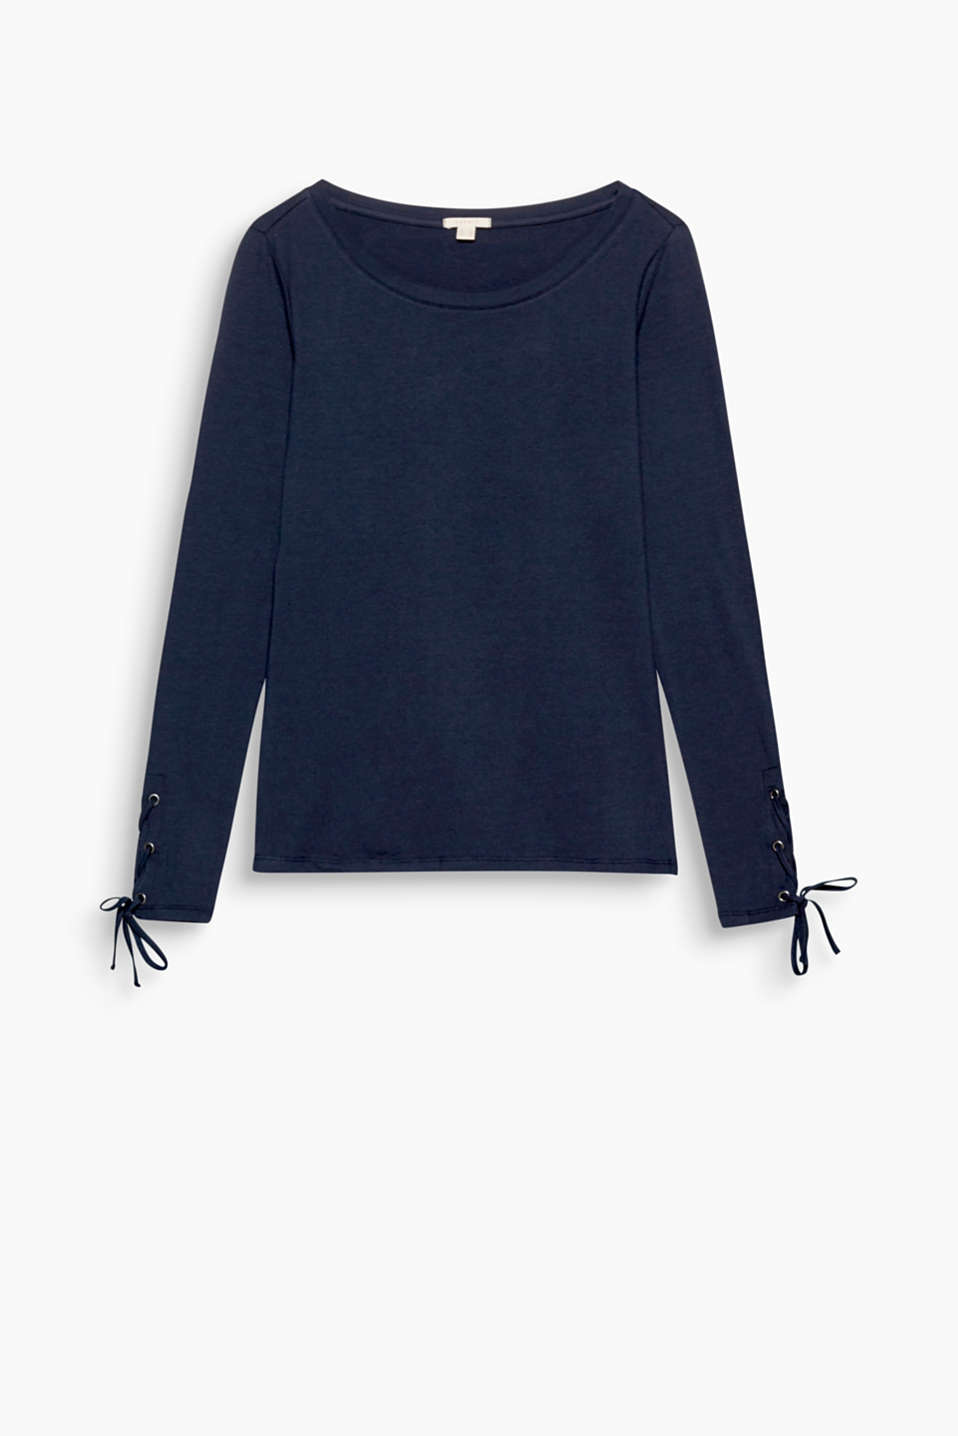 Lavishly laced: fitted, stretch cotton long sleeve top with sophisticated sleeve ends